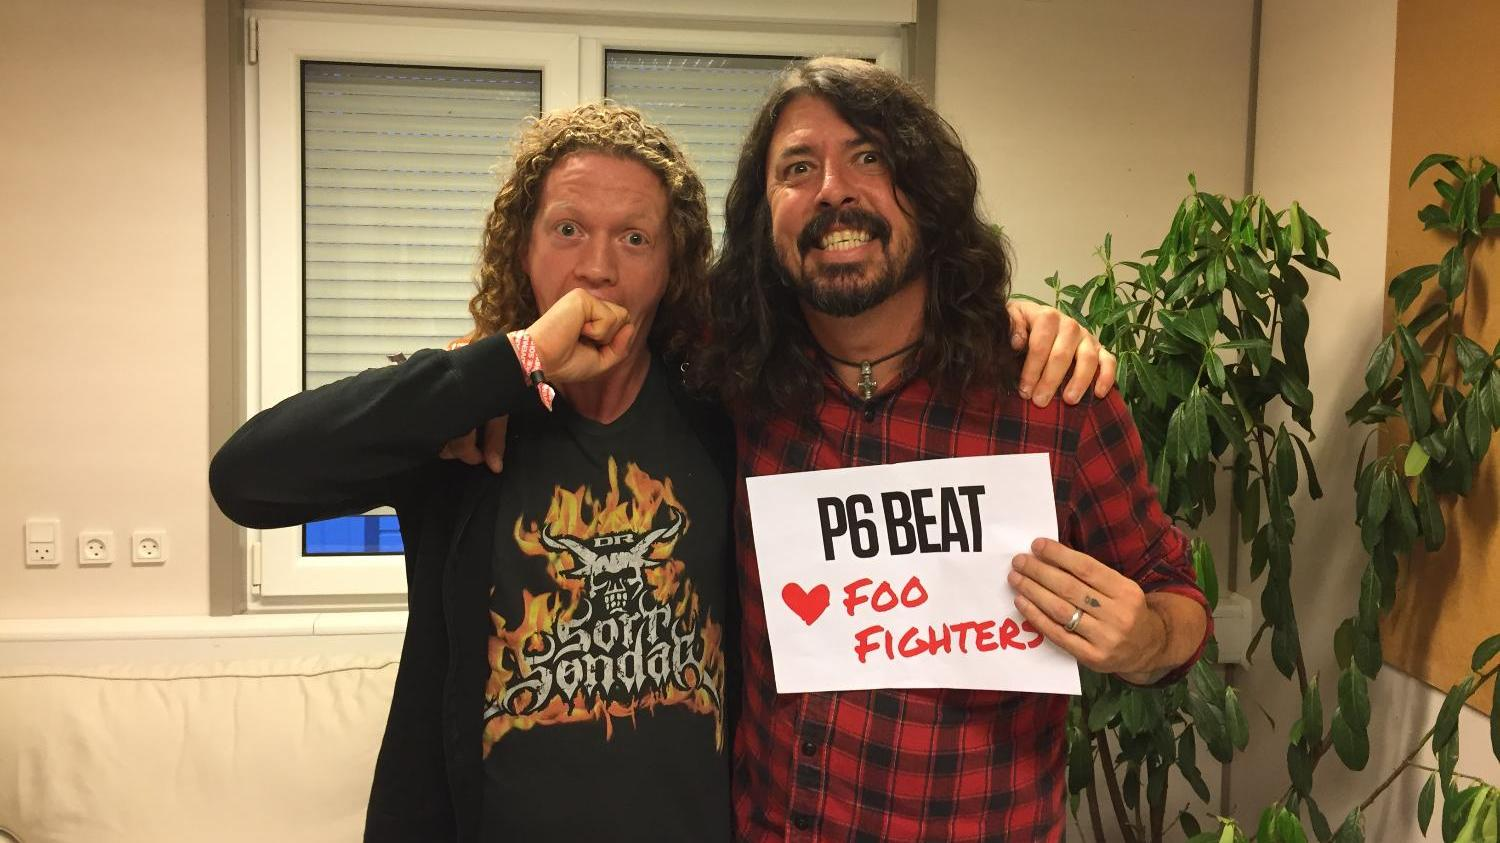 P6 BEAT elsker Foo Fighters